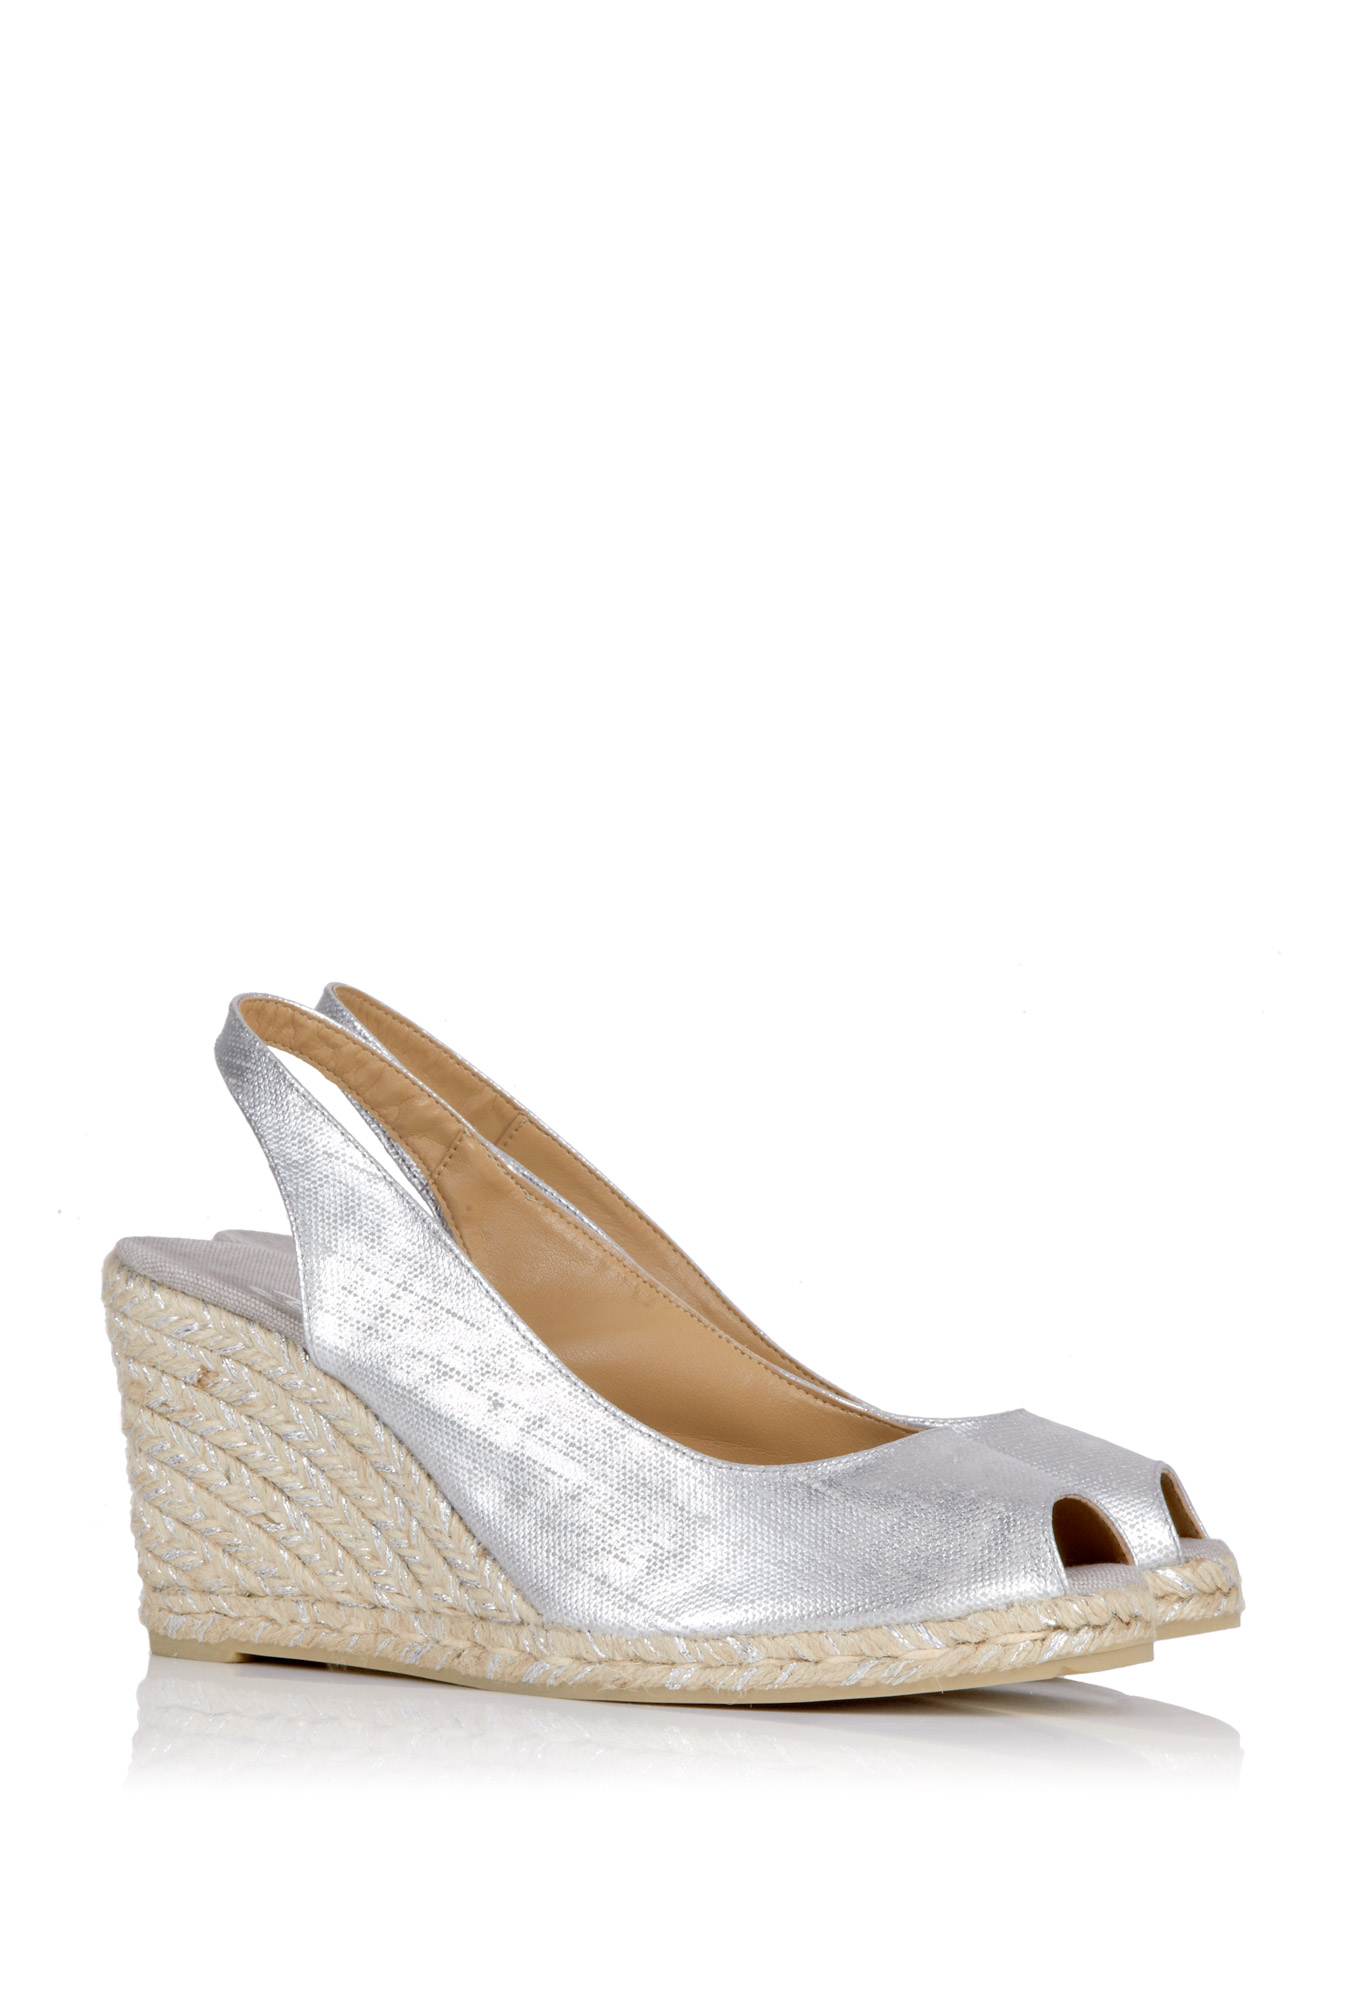 Silver Wedge Shoes For Sale